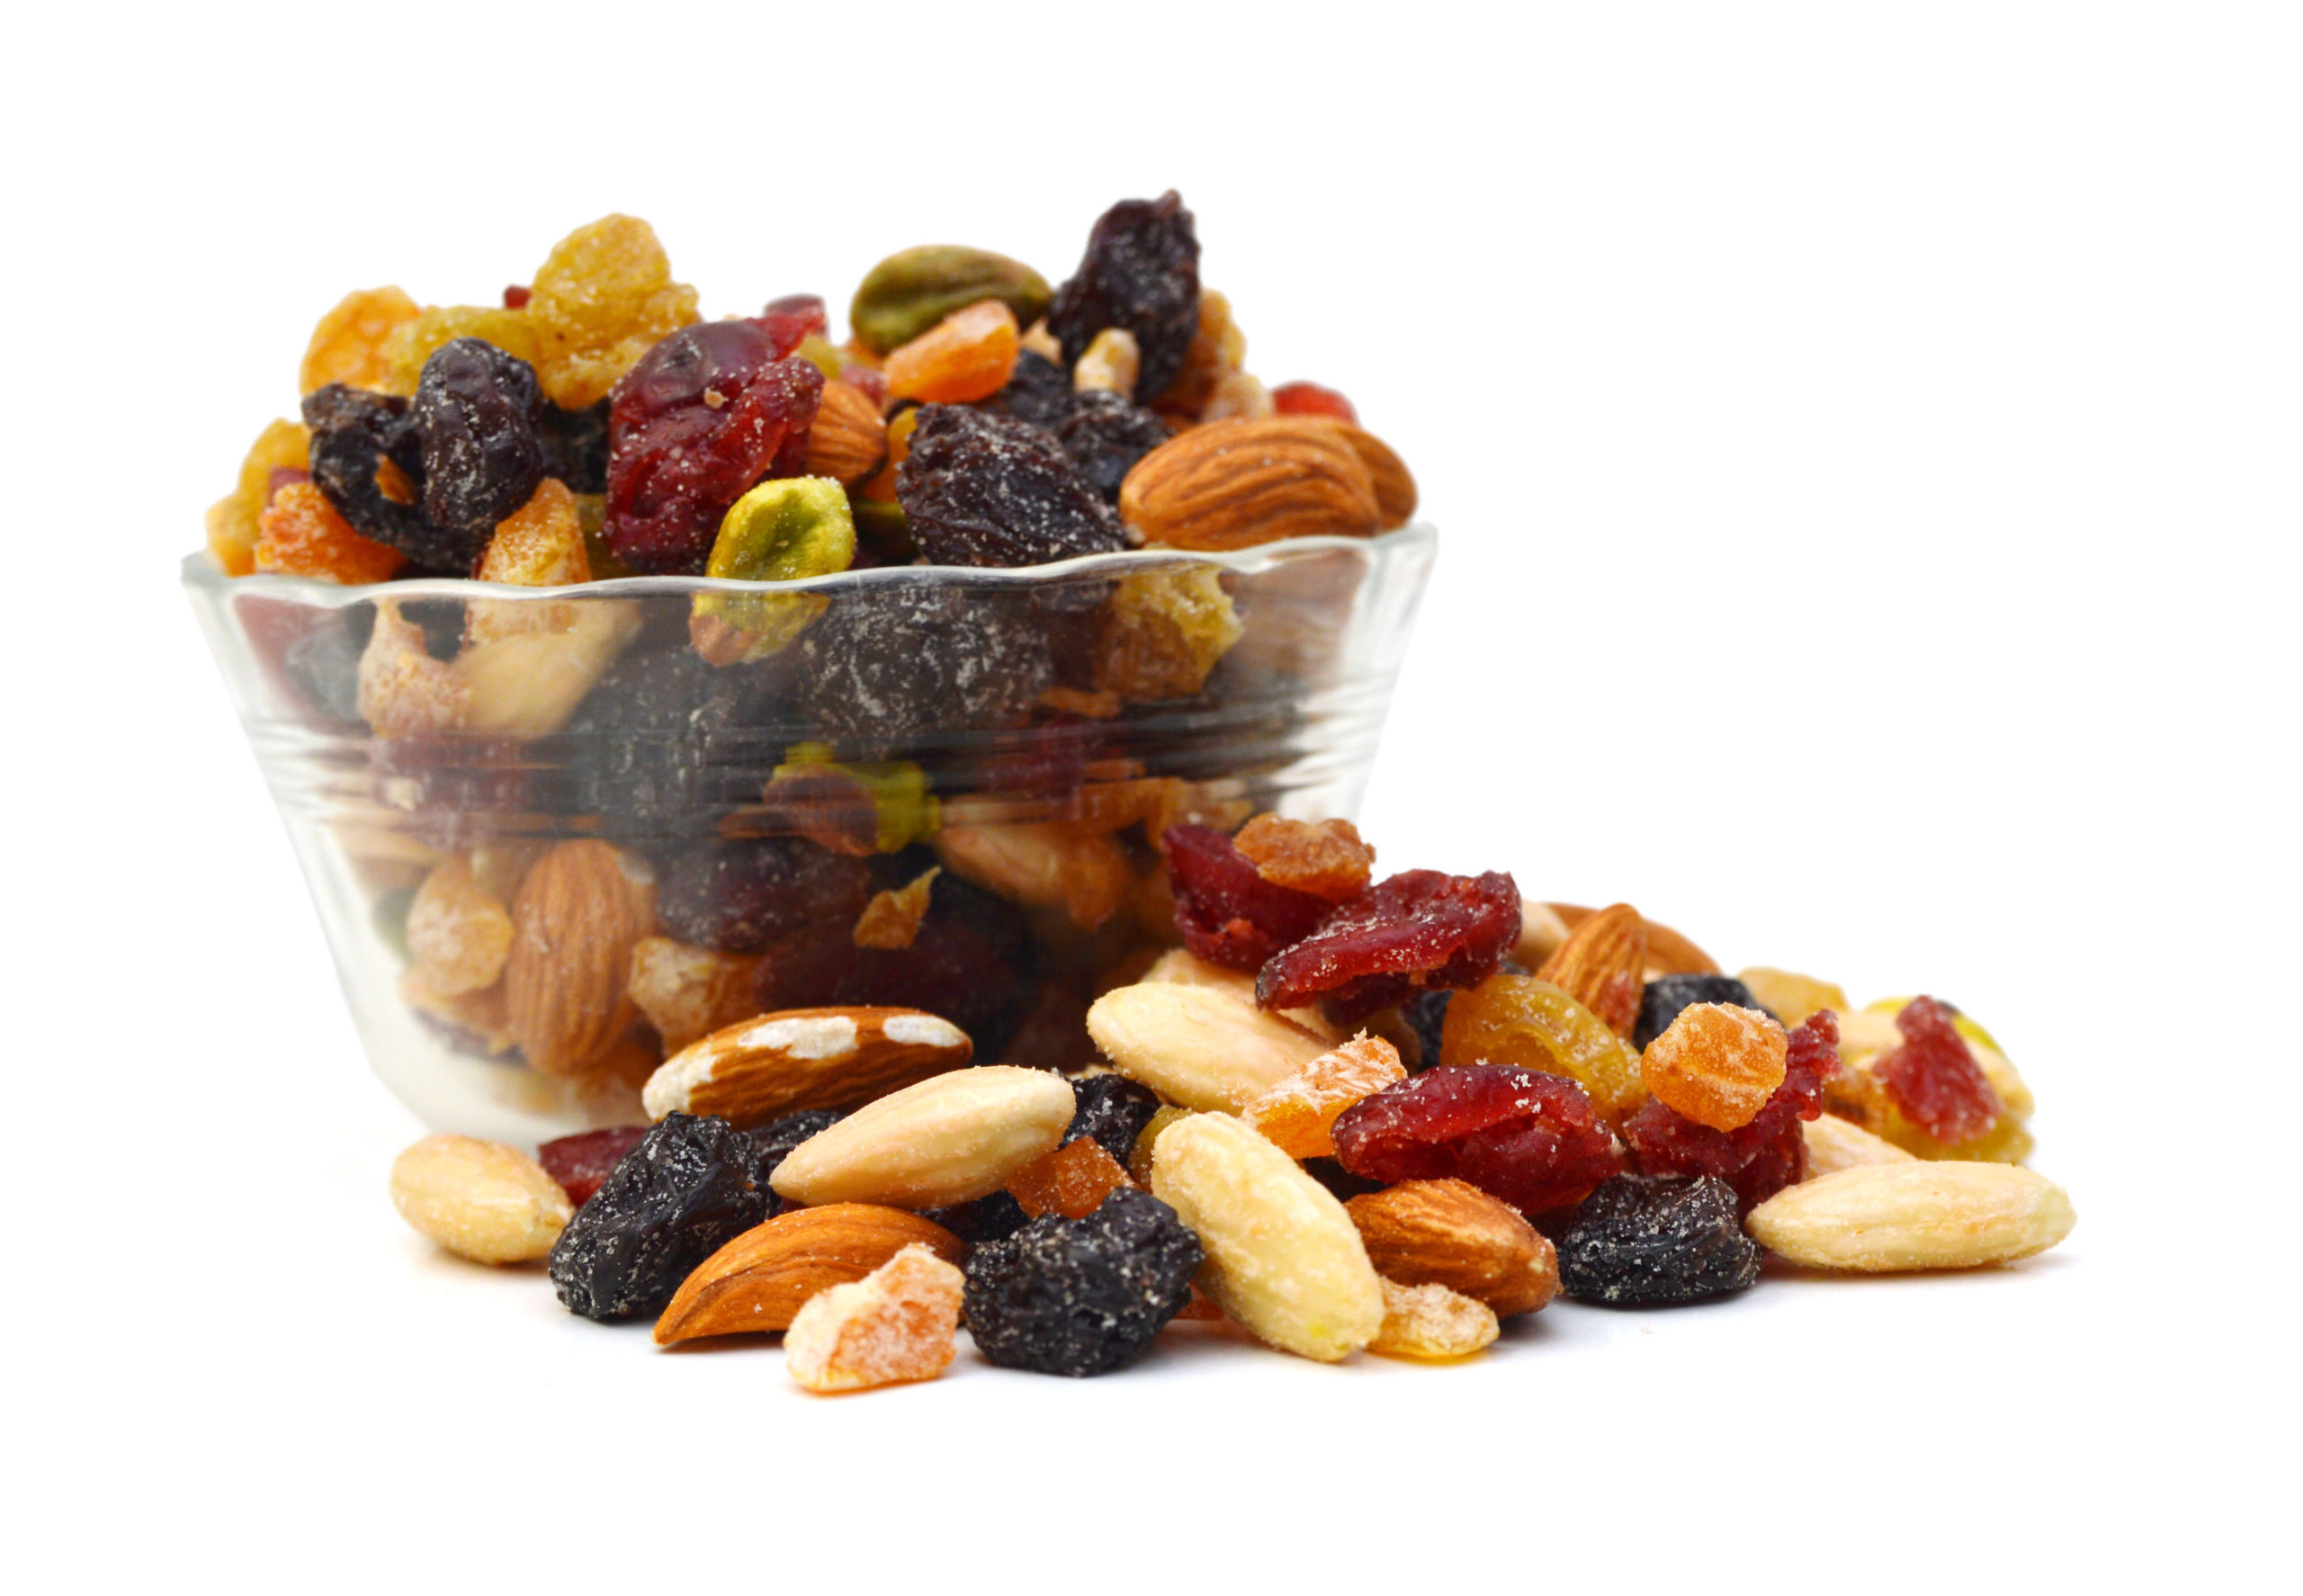 Healthy and Hassle Free Half-Time Snack Ideas